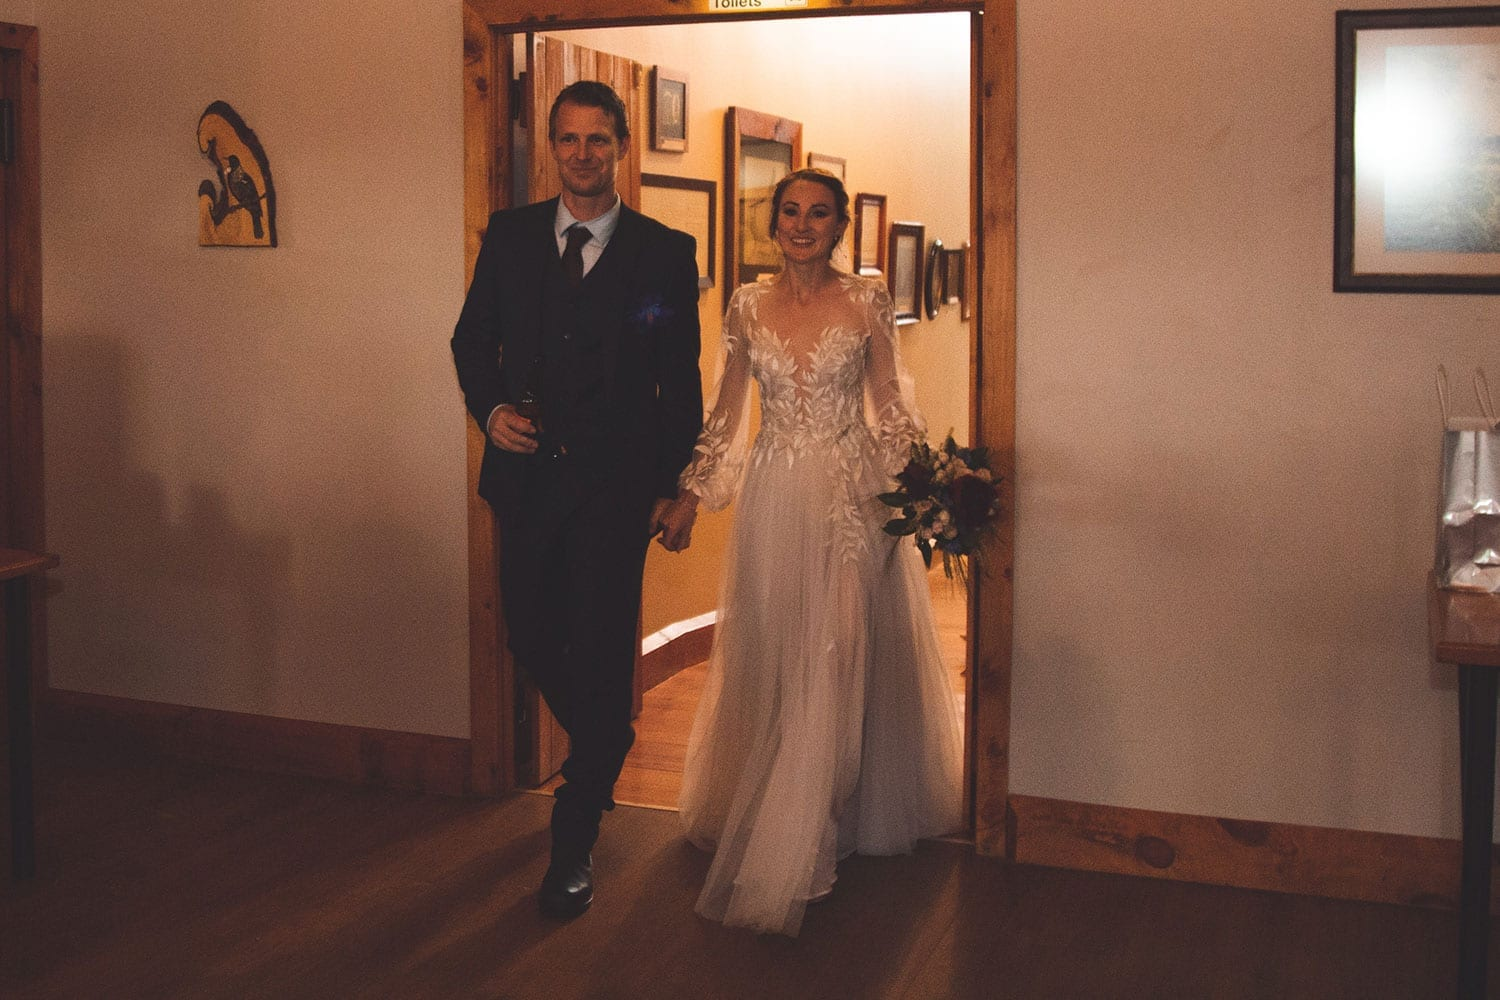 Vinka Design Features Real Weddings - bride in custom made gown, a combination of Isabelle and Ivy from our Heart of Havana collection. Bride and groom enter reception through doorway